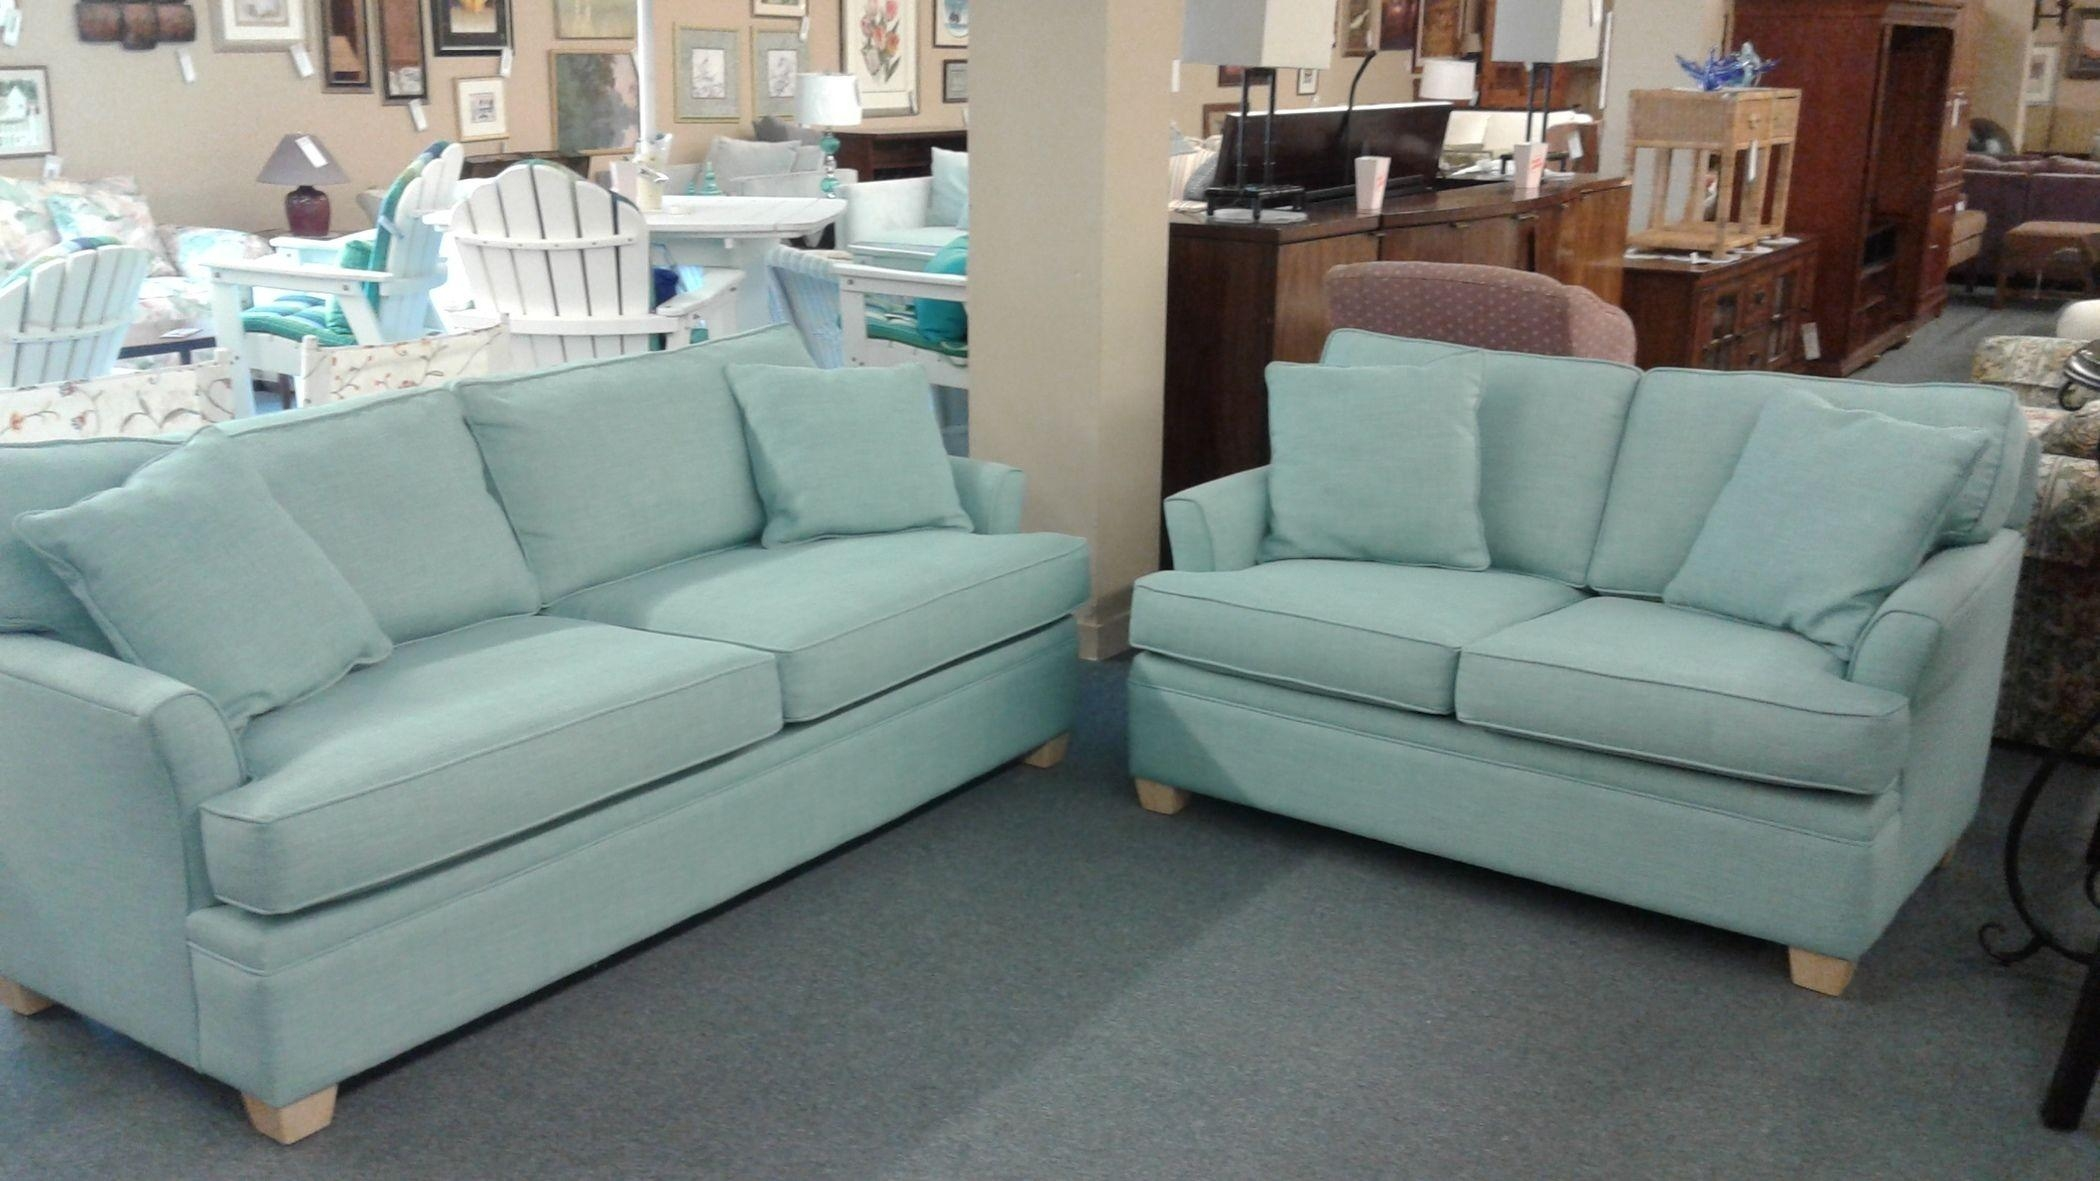 Braxton Culler Sofa & Loveseat | Delmarva Furniture Consignment In Braxton Culler Sofas (View 12 of 20)